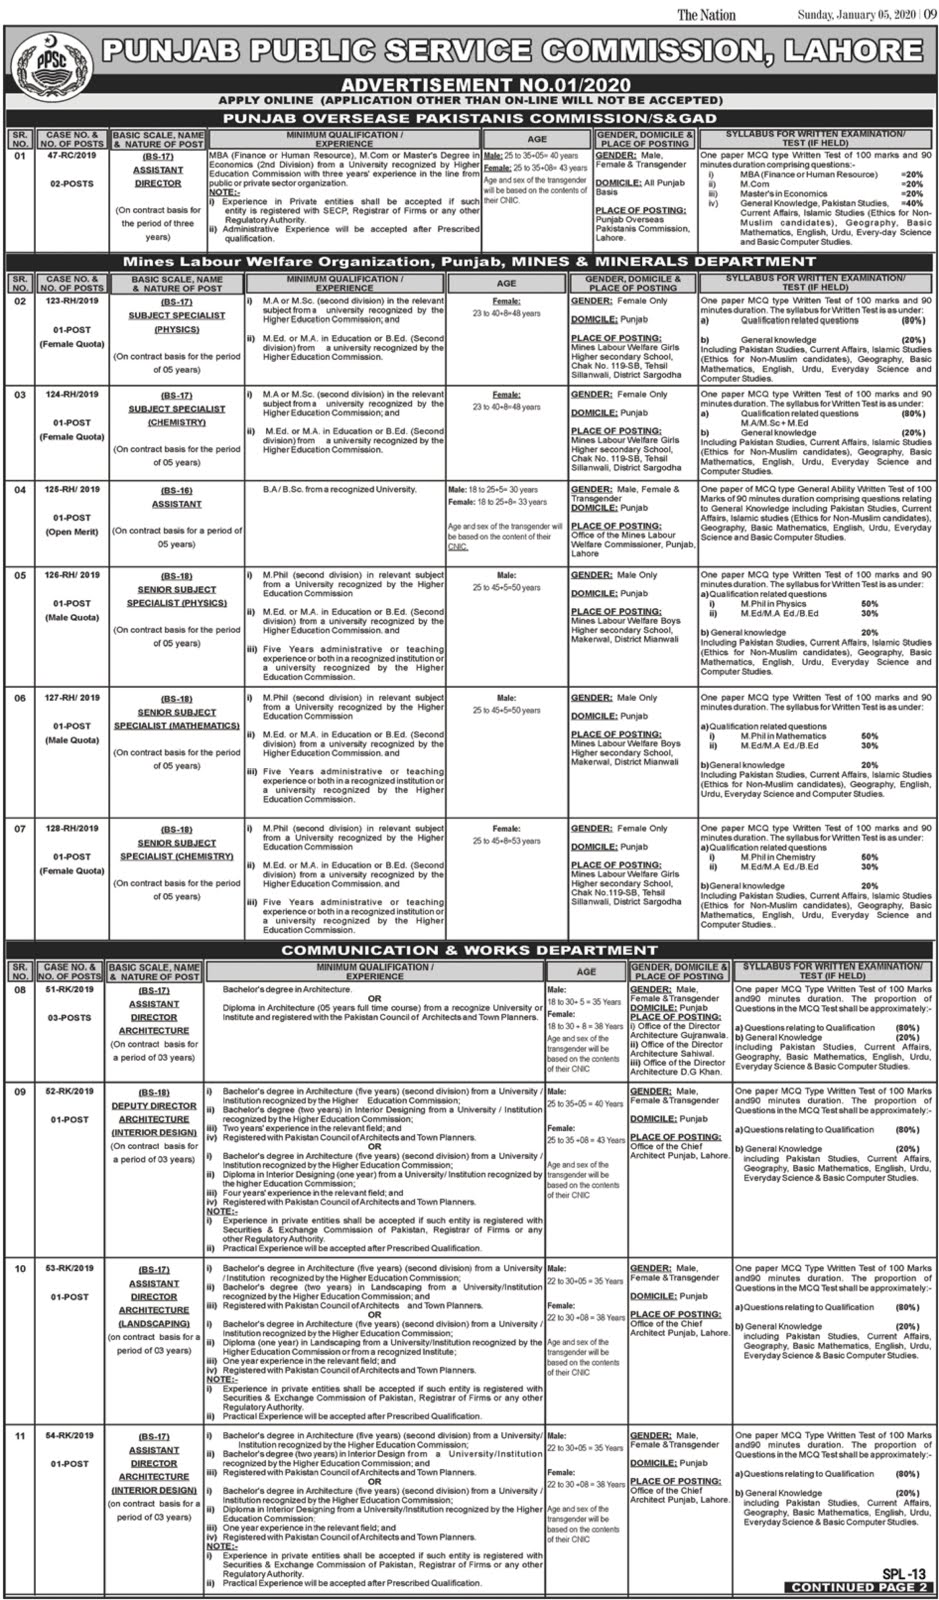 Punjab Public Service Commission PPSC Jobs January 2020